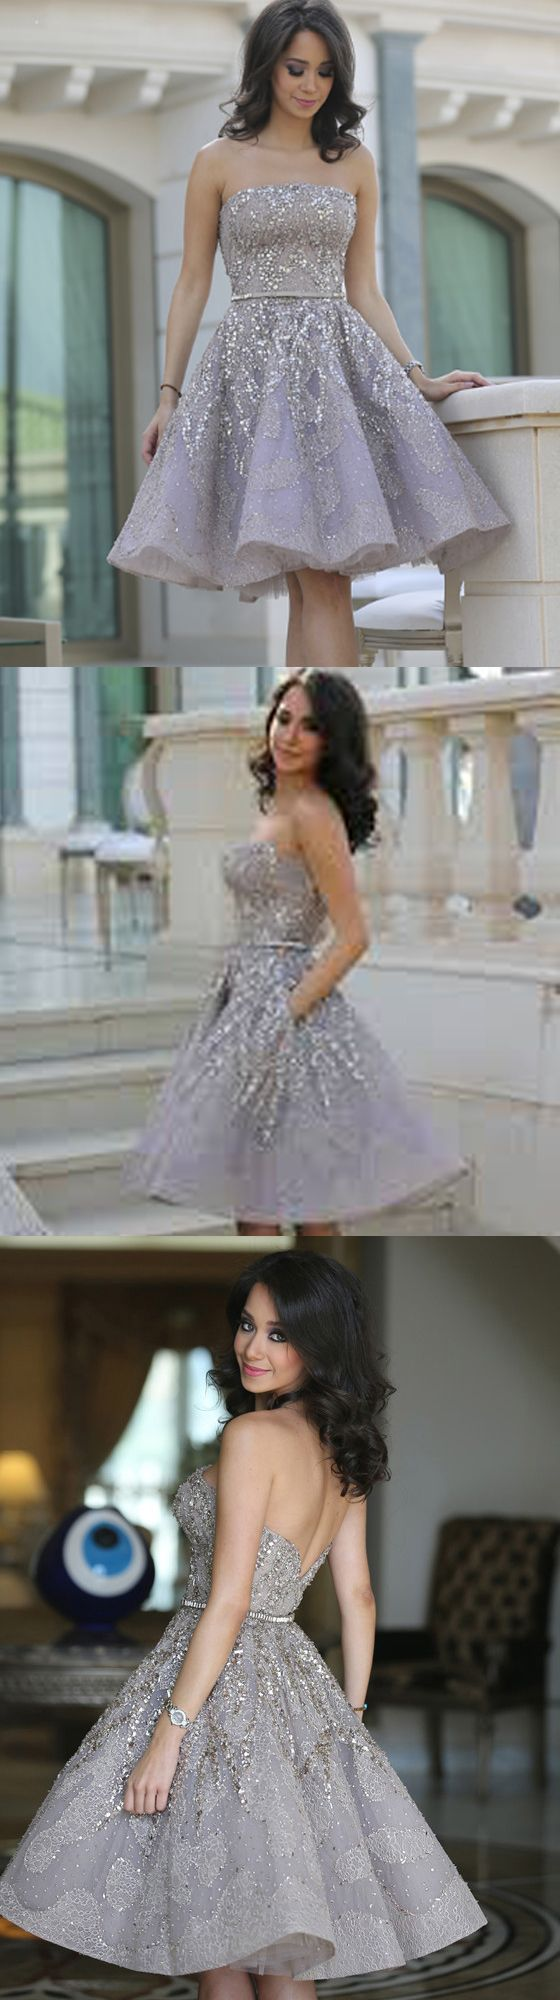 Homecoming Dresses,Silver Grey Homecoming Dresses,Beading Homecoming Gowns,Cute Party